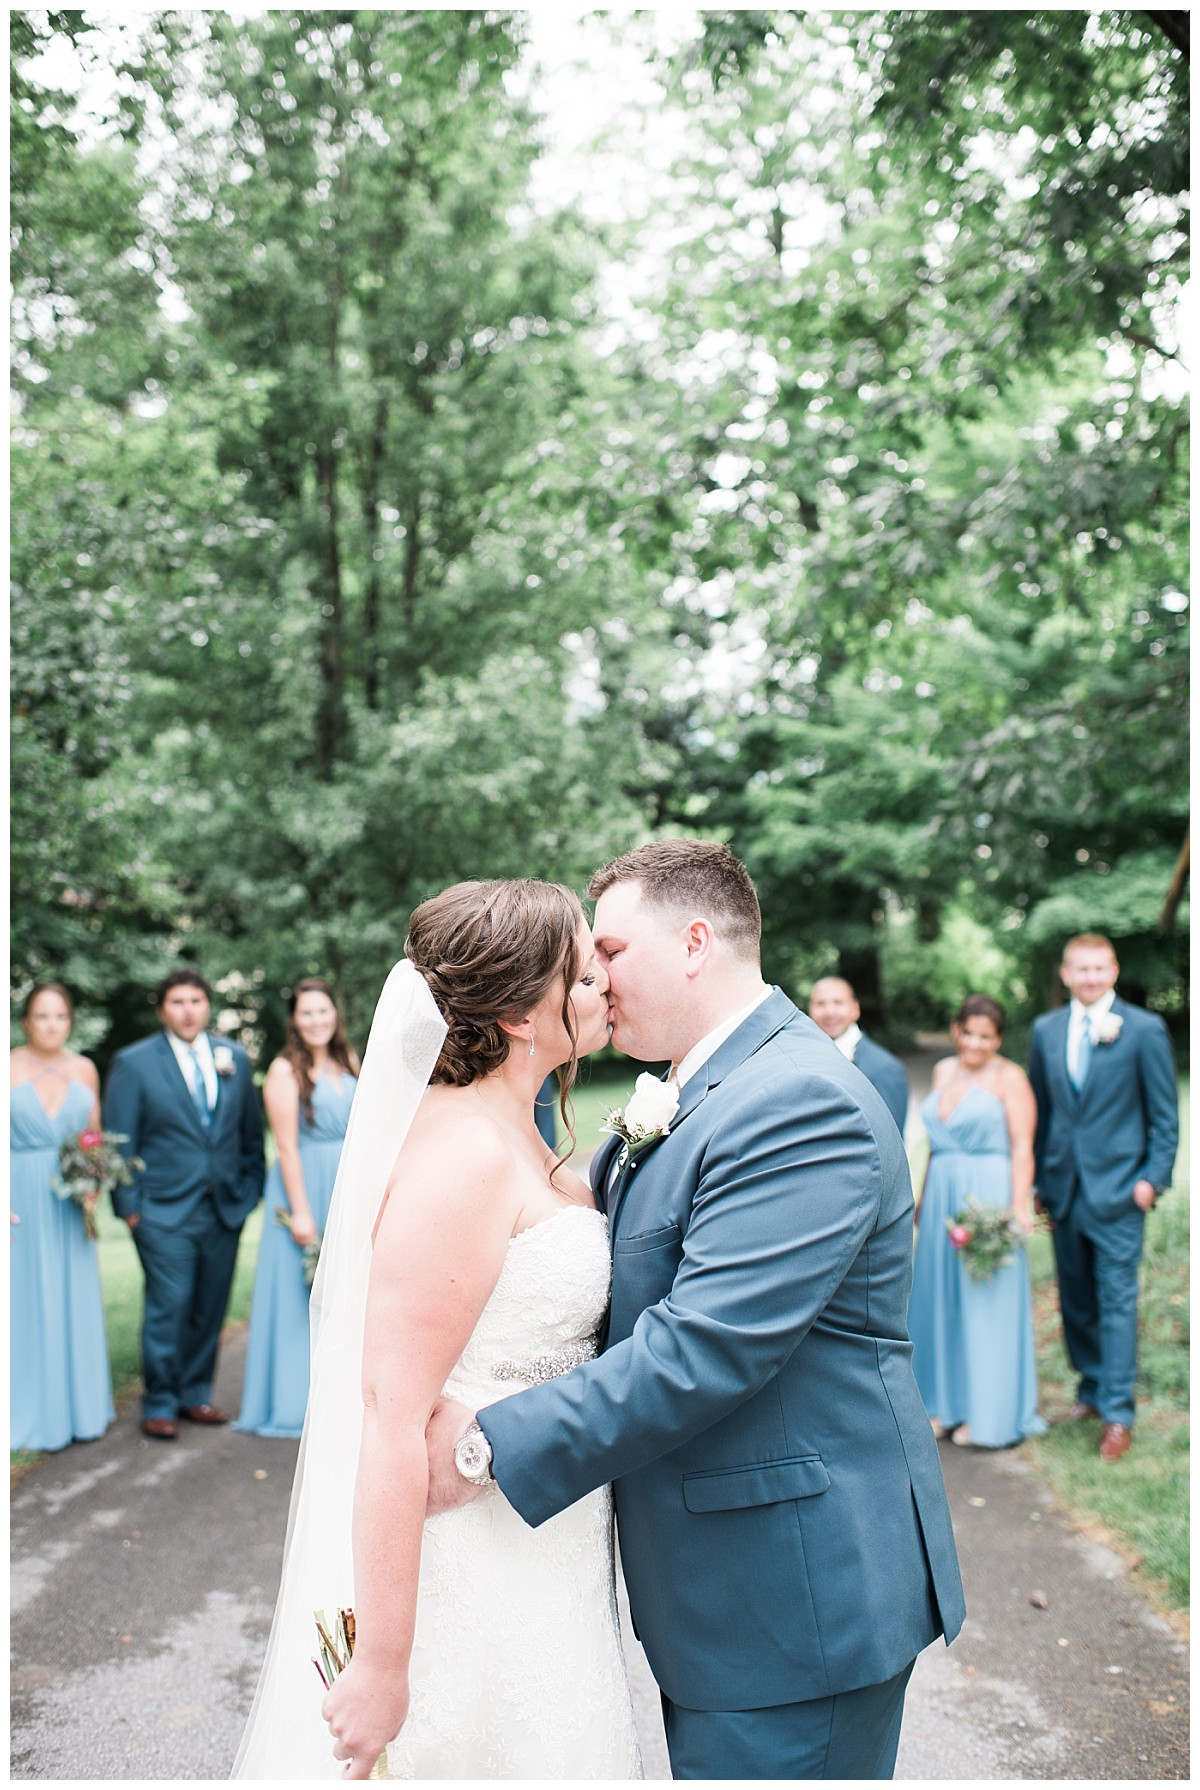 Bush house estate bridal couple